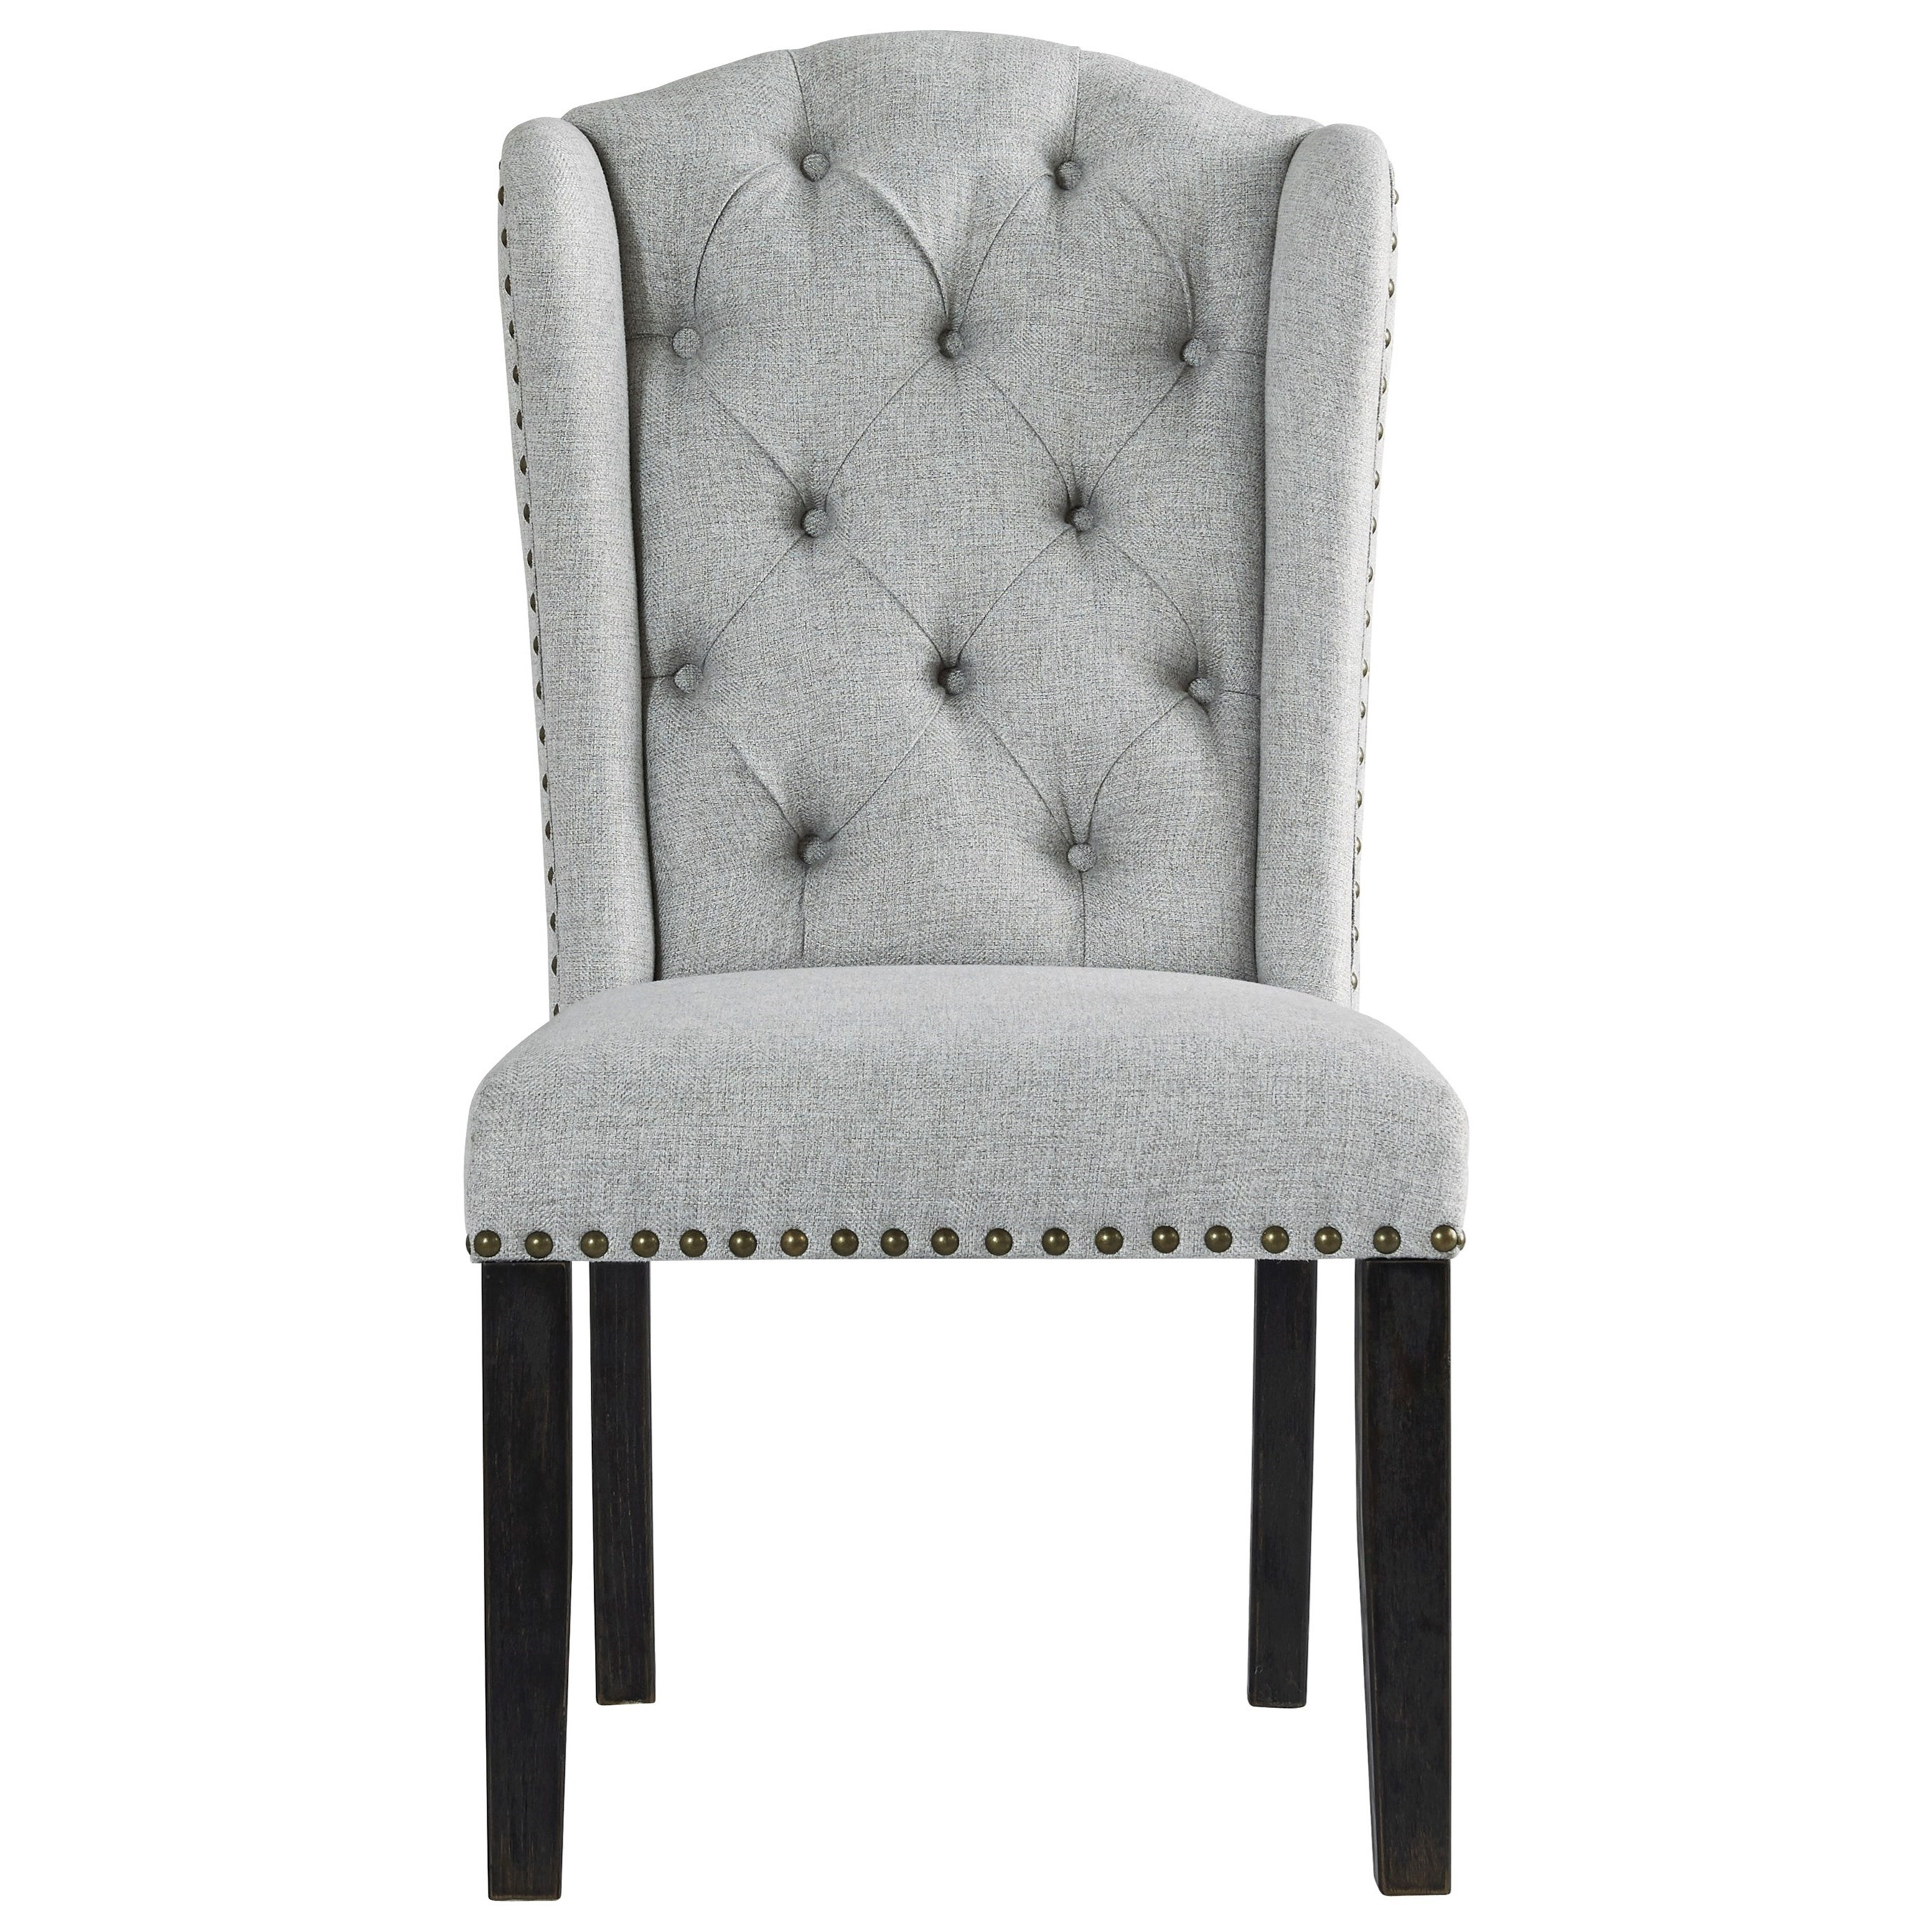 Jeanette Dining Upholstered Side Chair at Walker's Furniture